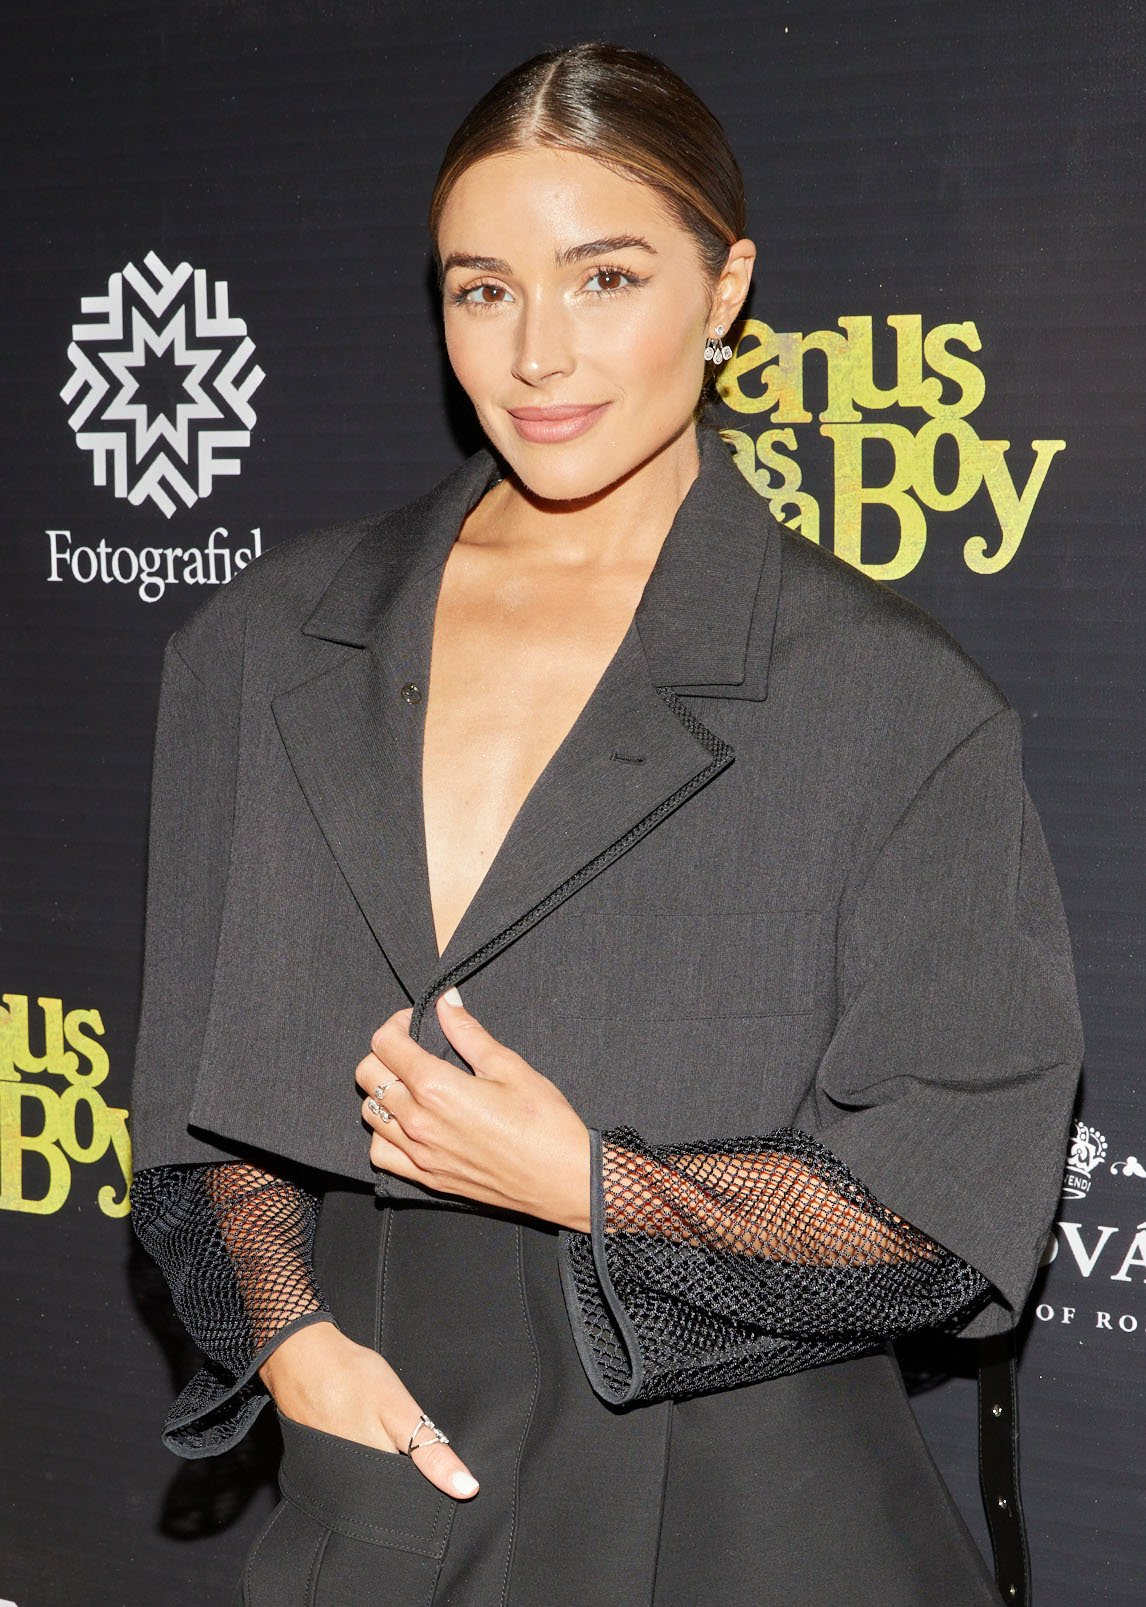 Olivia Culpo accentuates her beauty with bold brows, peachy eyeshadow and blush, and nude lipstick